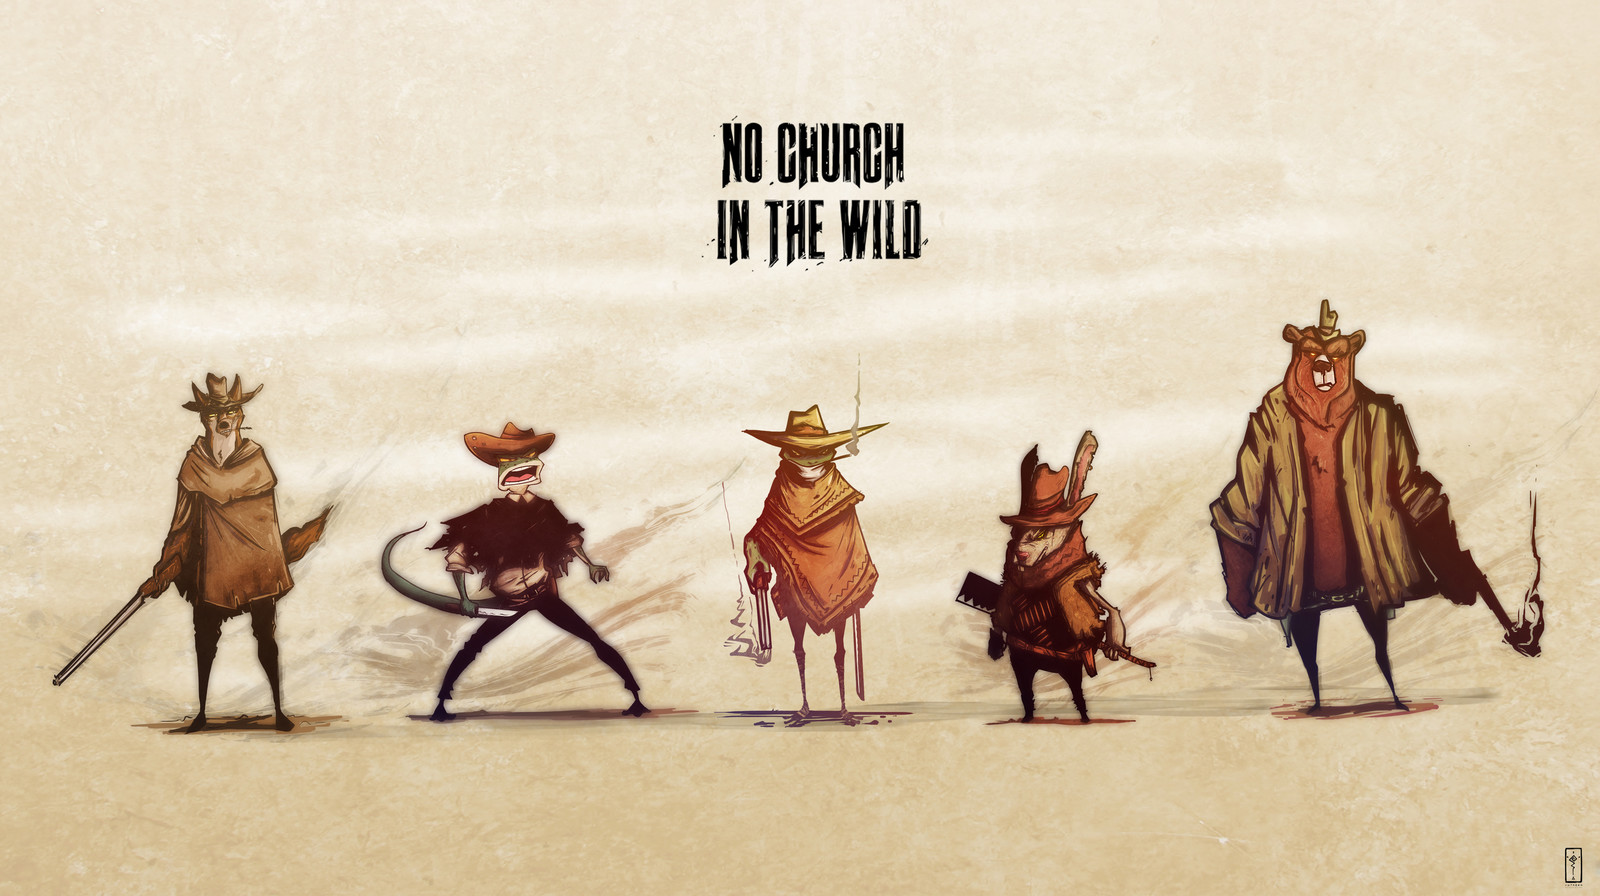 Church In The Wild - Comic Character Design Showcase